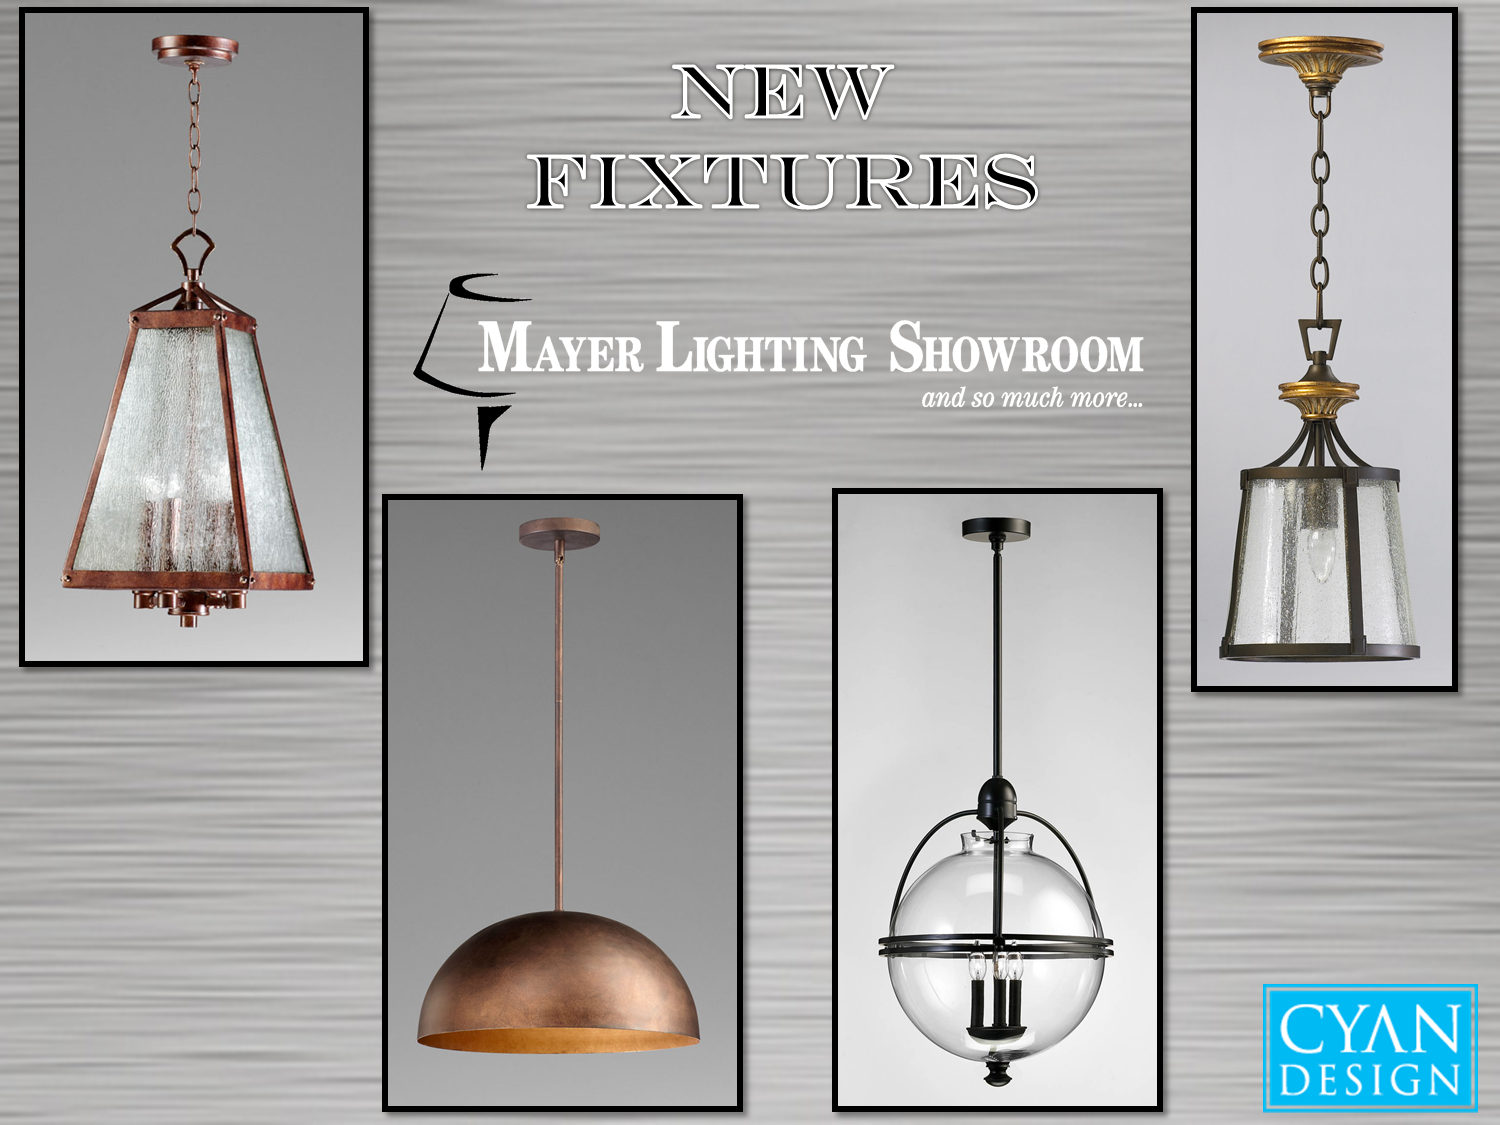 In January Two of our ladies attended the International Lighting Market in Dallas. While at market they purchased some great new fixtures to sell in our ... & Mayer Lighting Showroom: NEW FIXTURES @ MAYER LIGHTING SHOWROOM azcodes.com